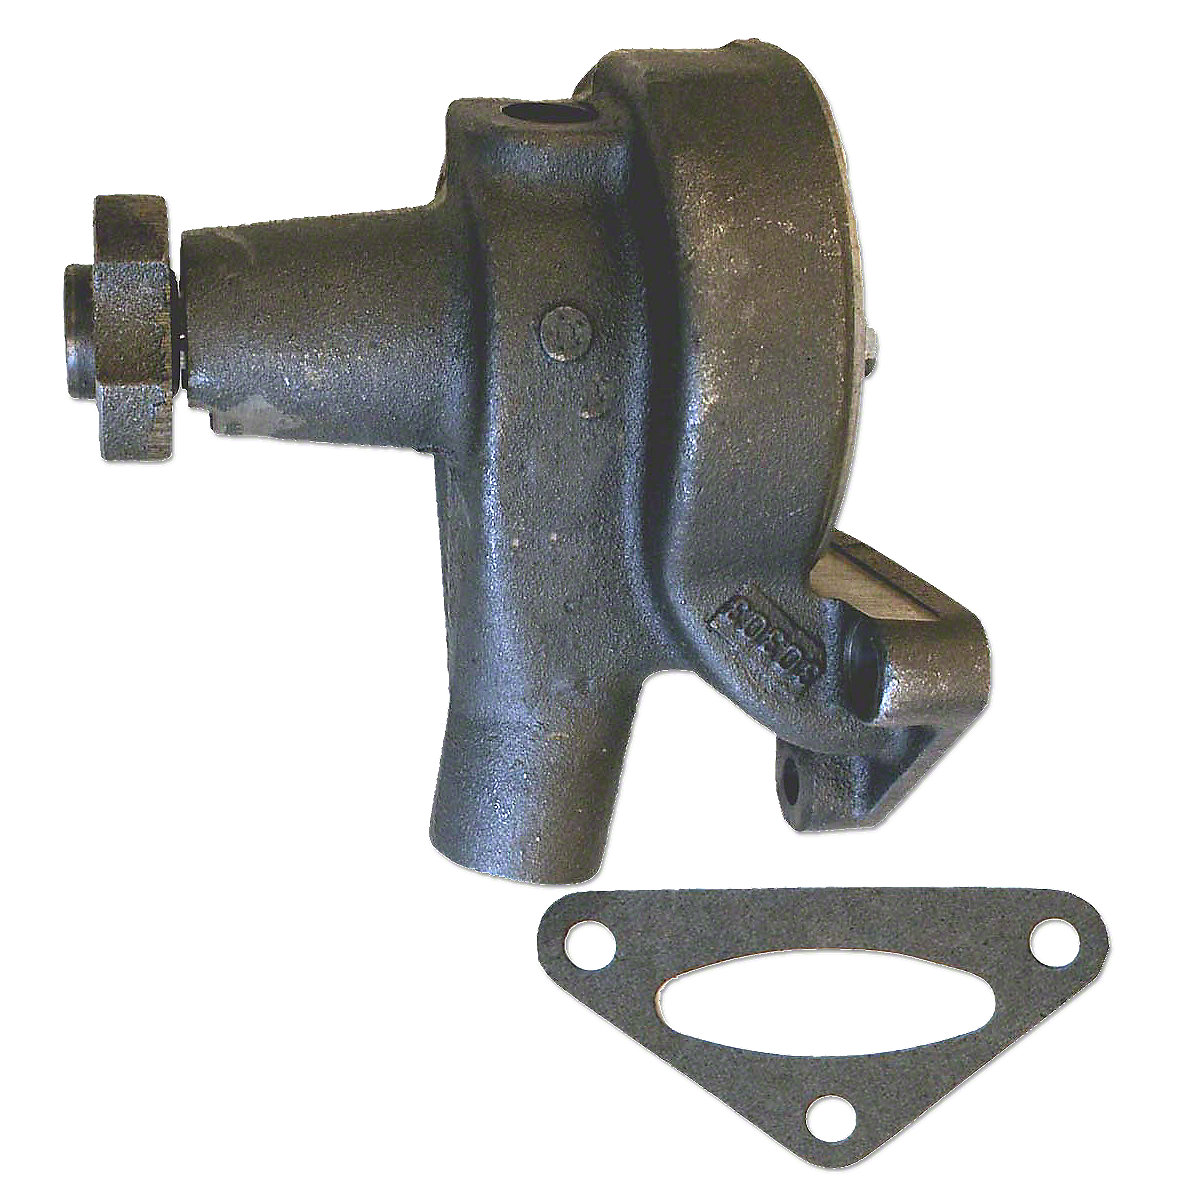 acs229 - New Water Pump For Allis Chalmers: WC, WD, WD45, WF Gas ...